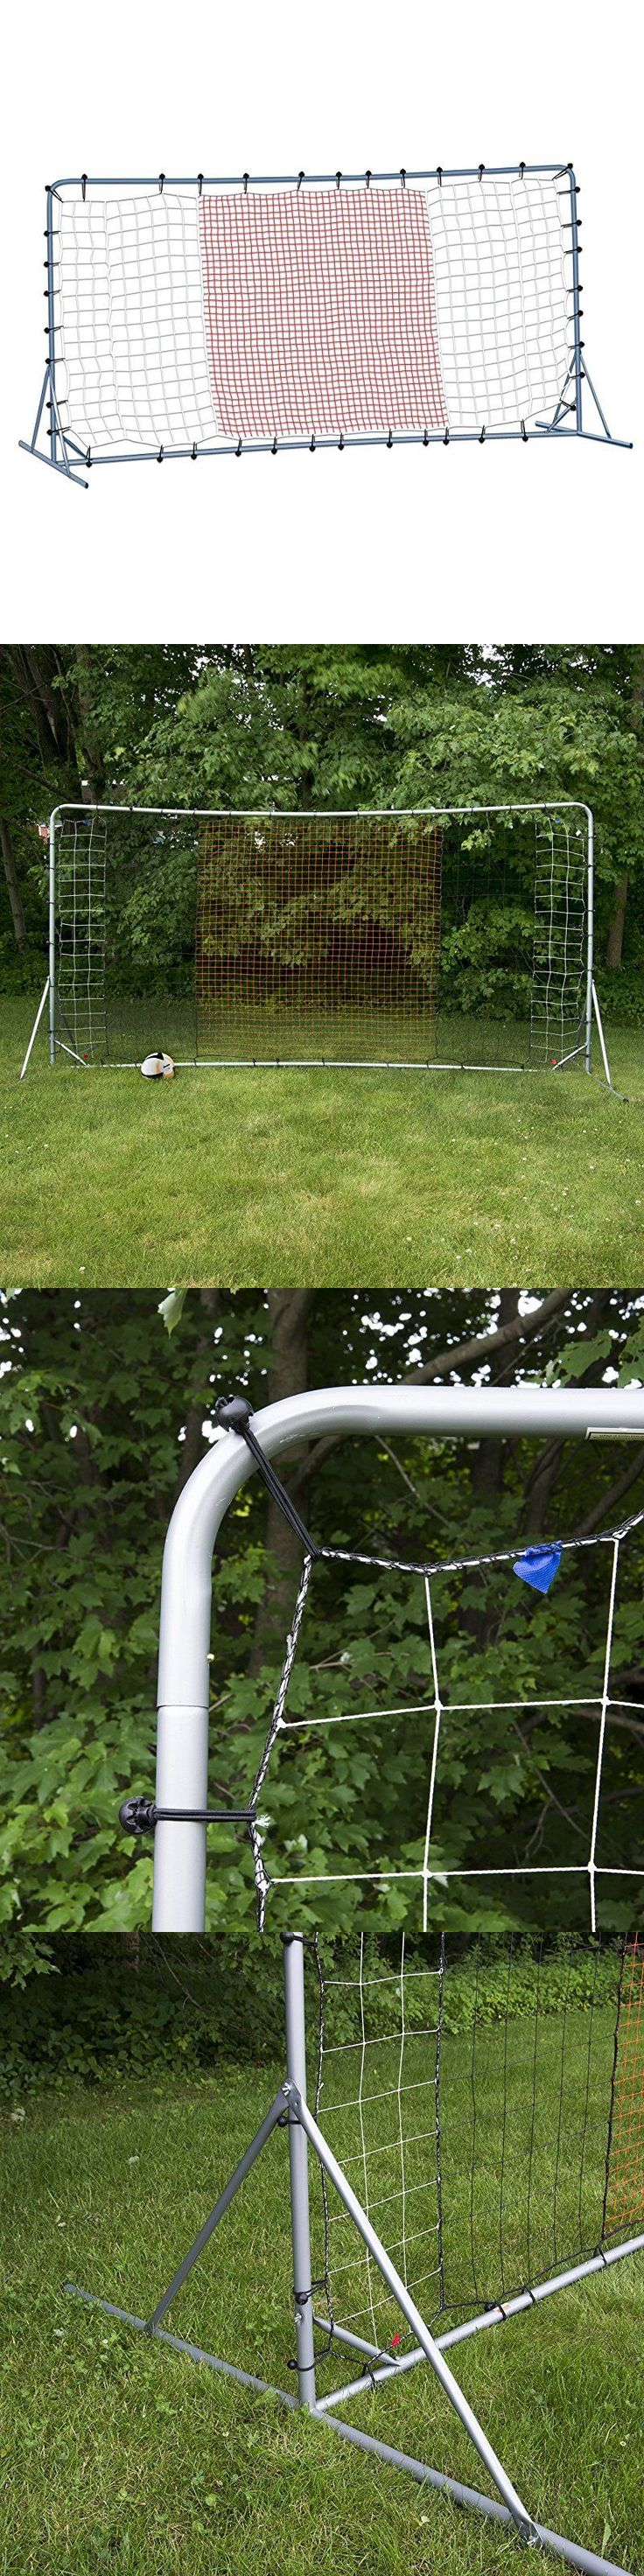 Goals and Nets 159180: Franklin Sports 12 X 6 Tournament Soccer Rebounder -> BUY IT NOW ONLY: $122.21 on eBay!